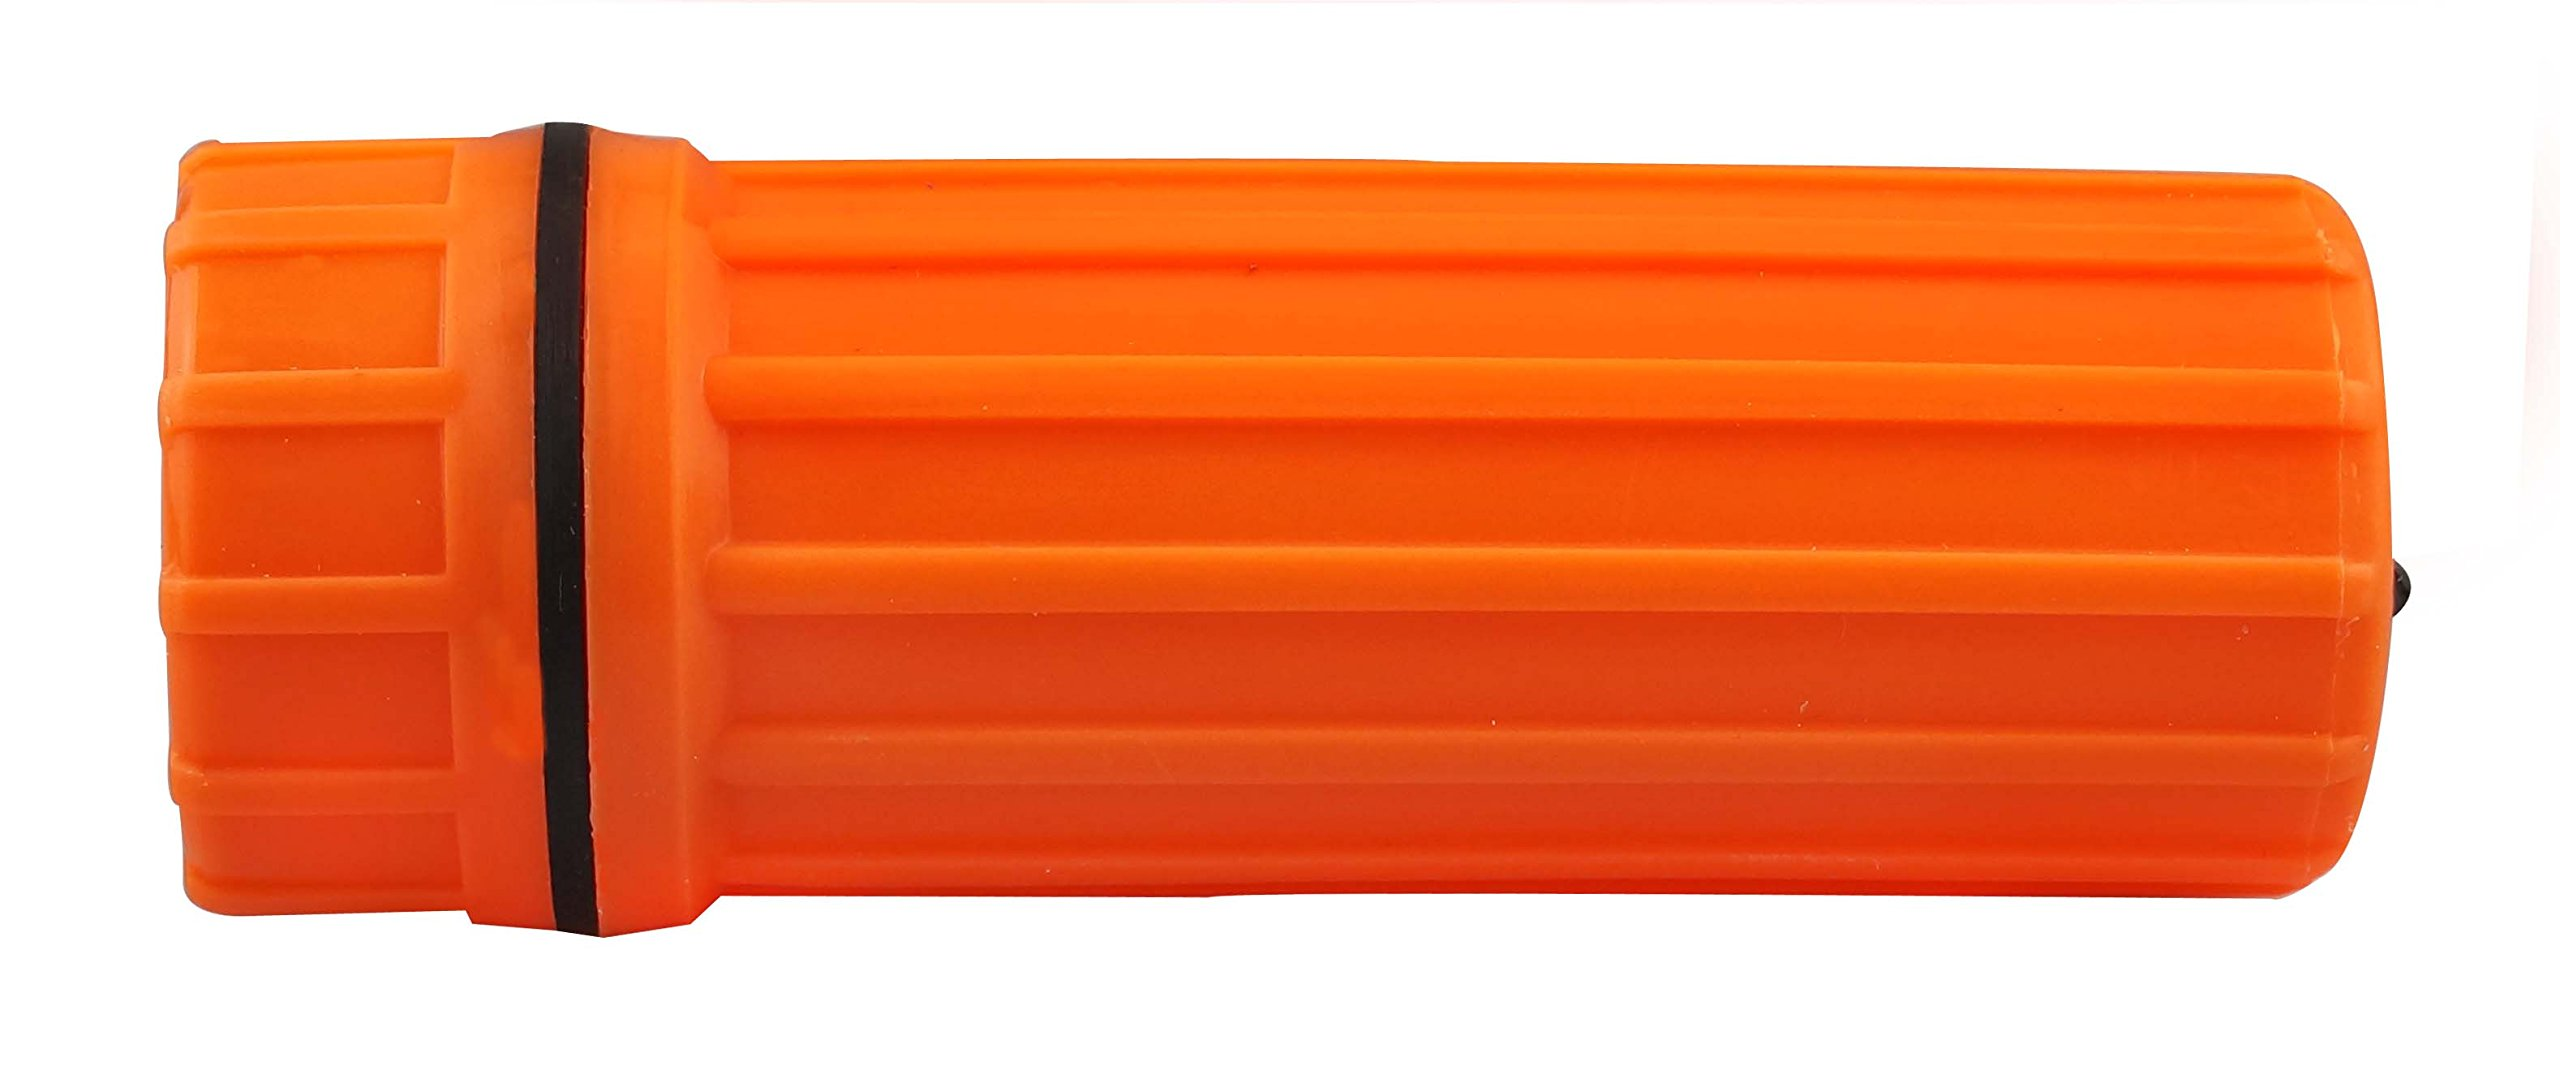 SE CCH6-1 3-IN-1 Orange Waterproof Match Storage Box